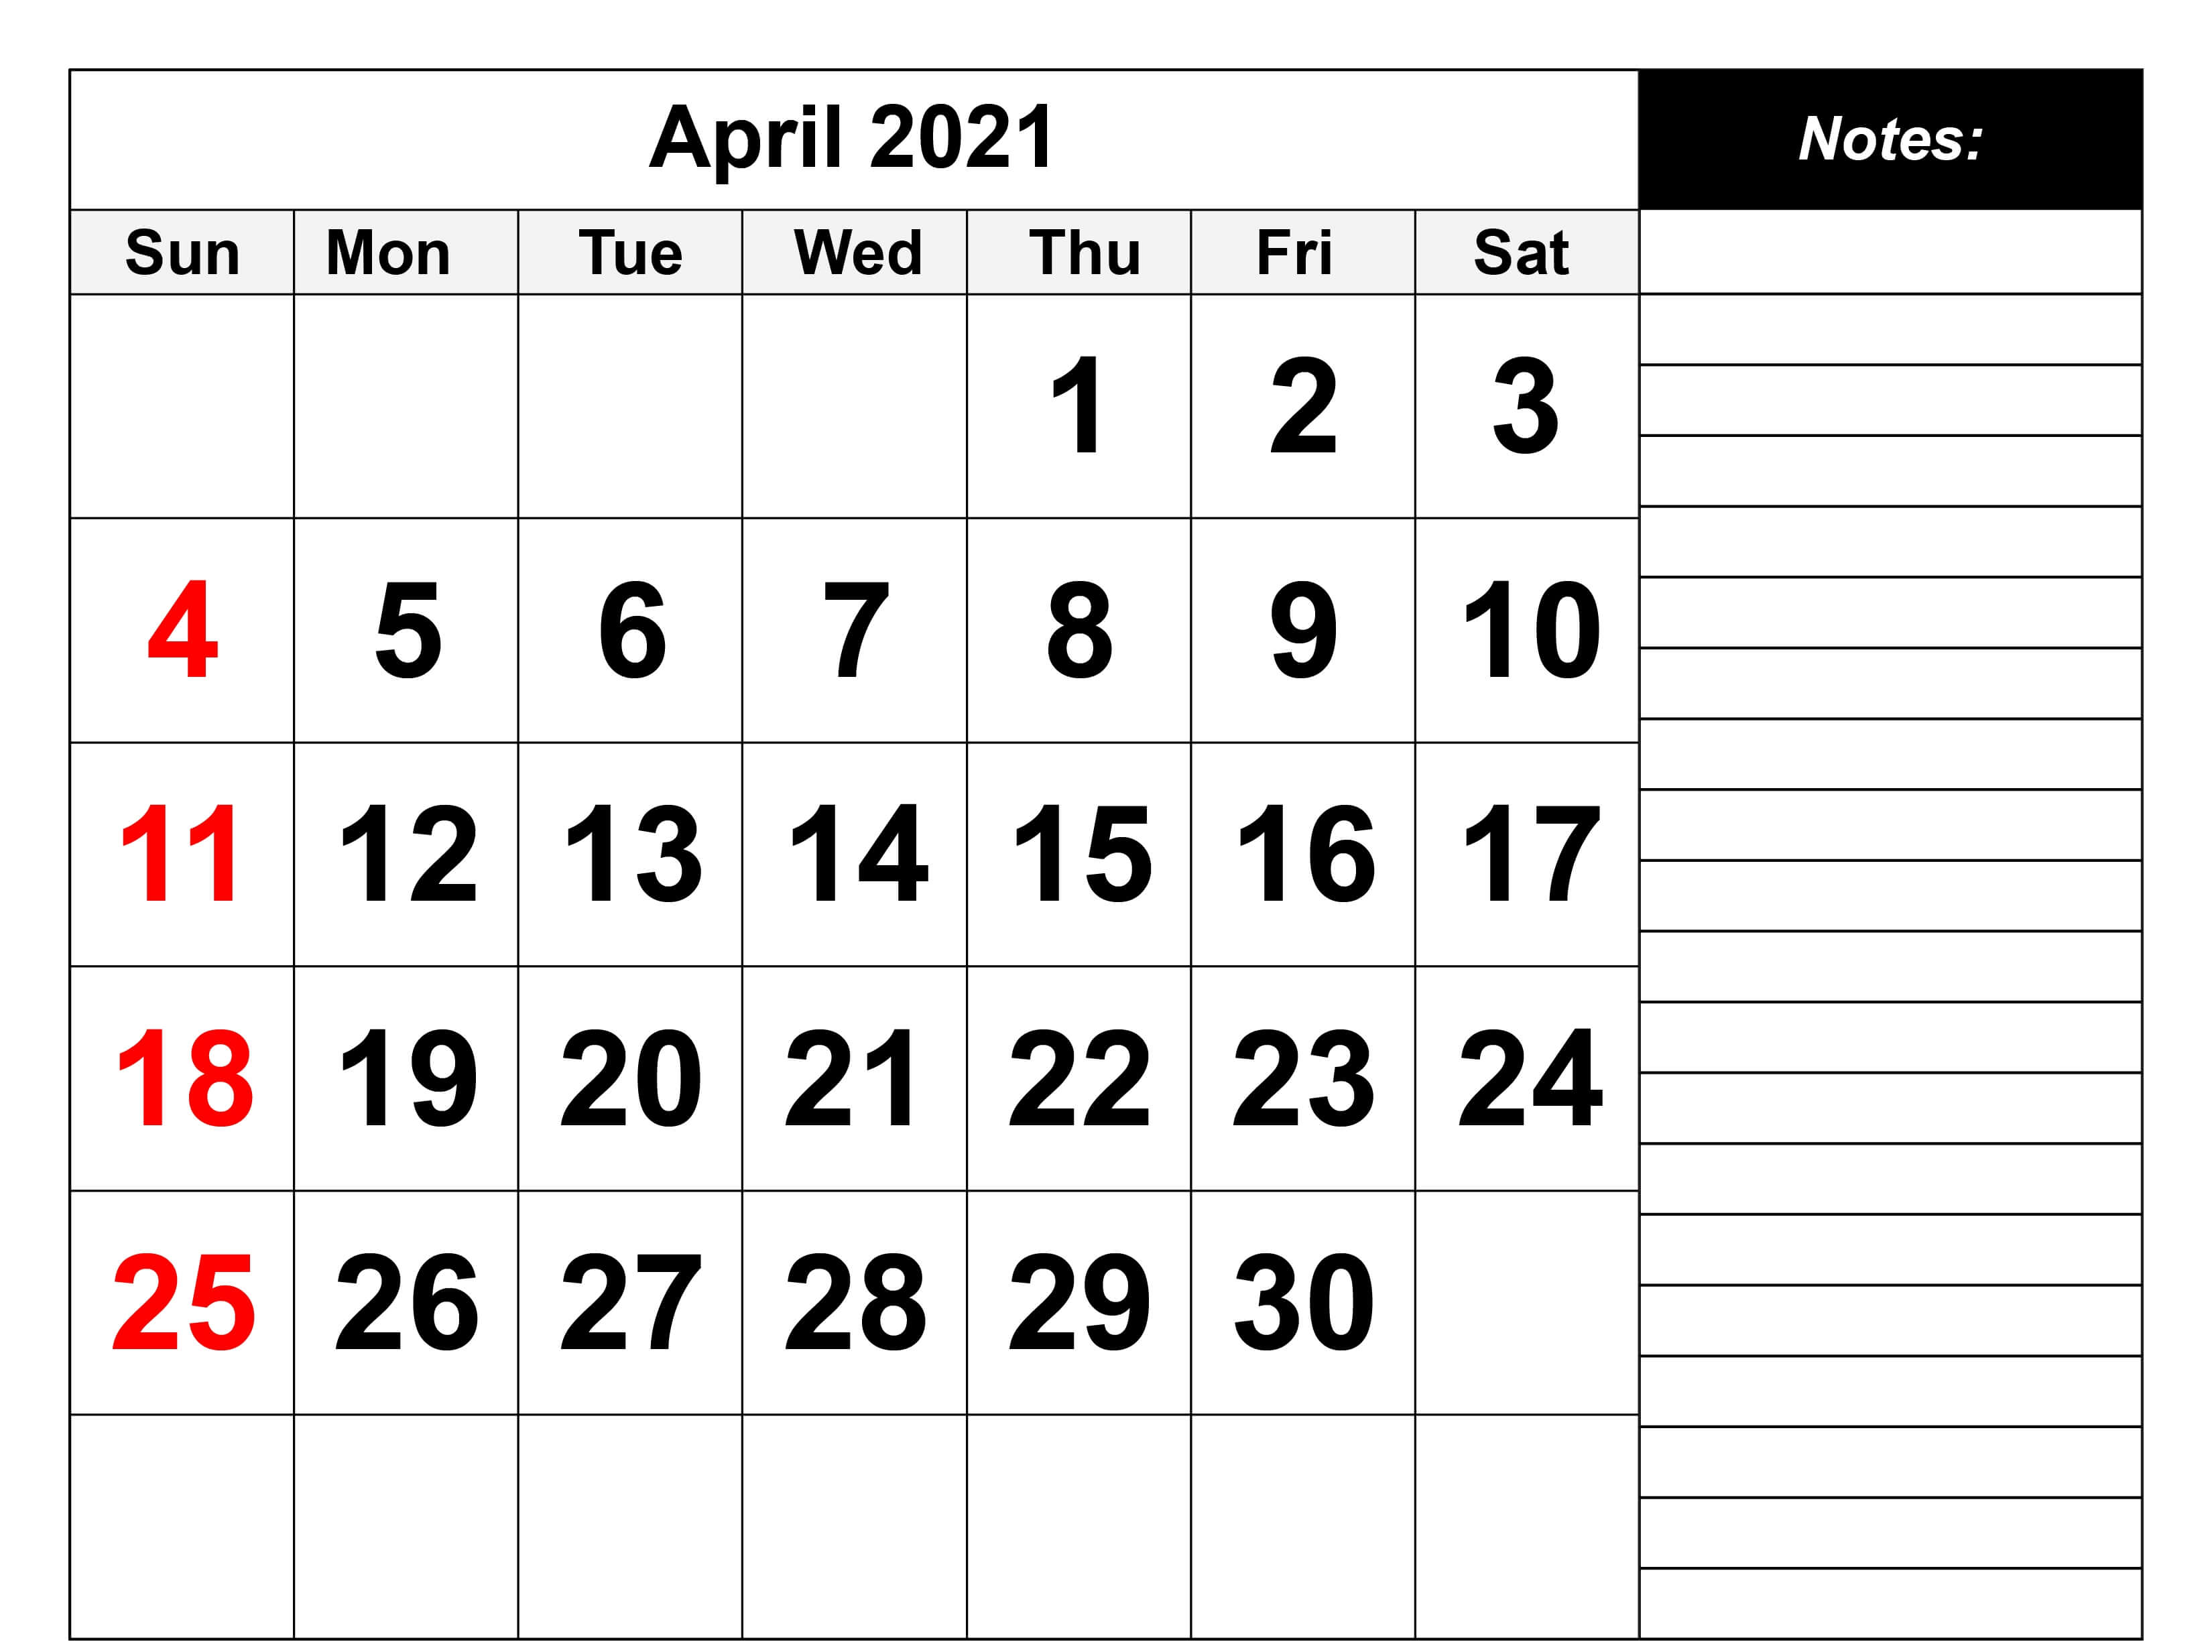 Editable April 2021 Calendar with Notes